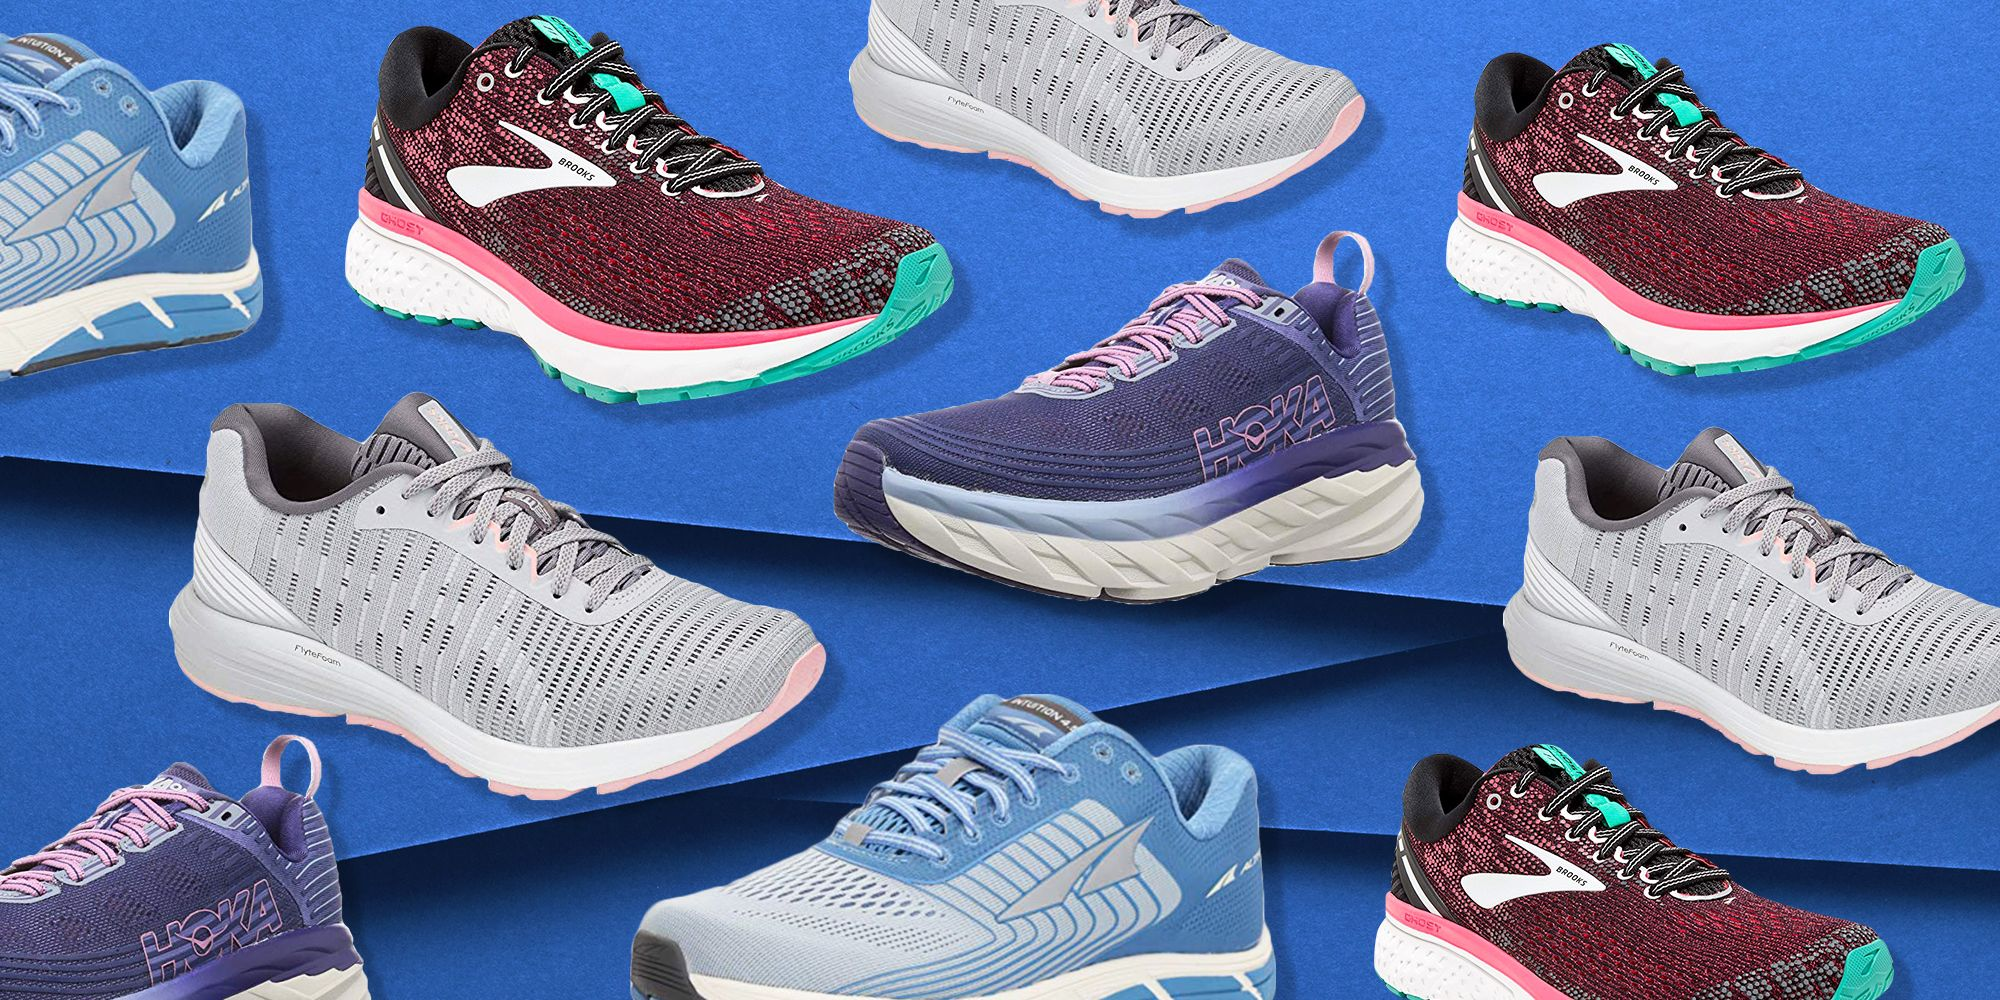 20 Best Walking Shoes For Women In 2019, Per Podiatrists